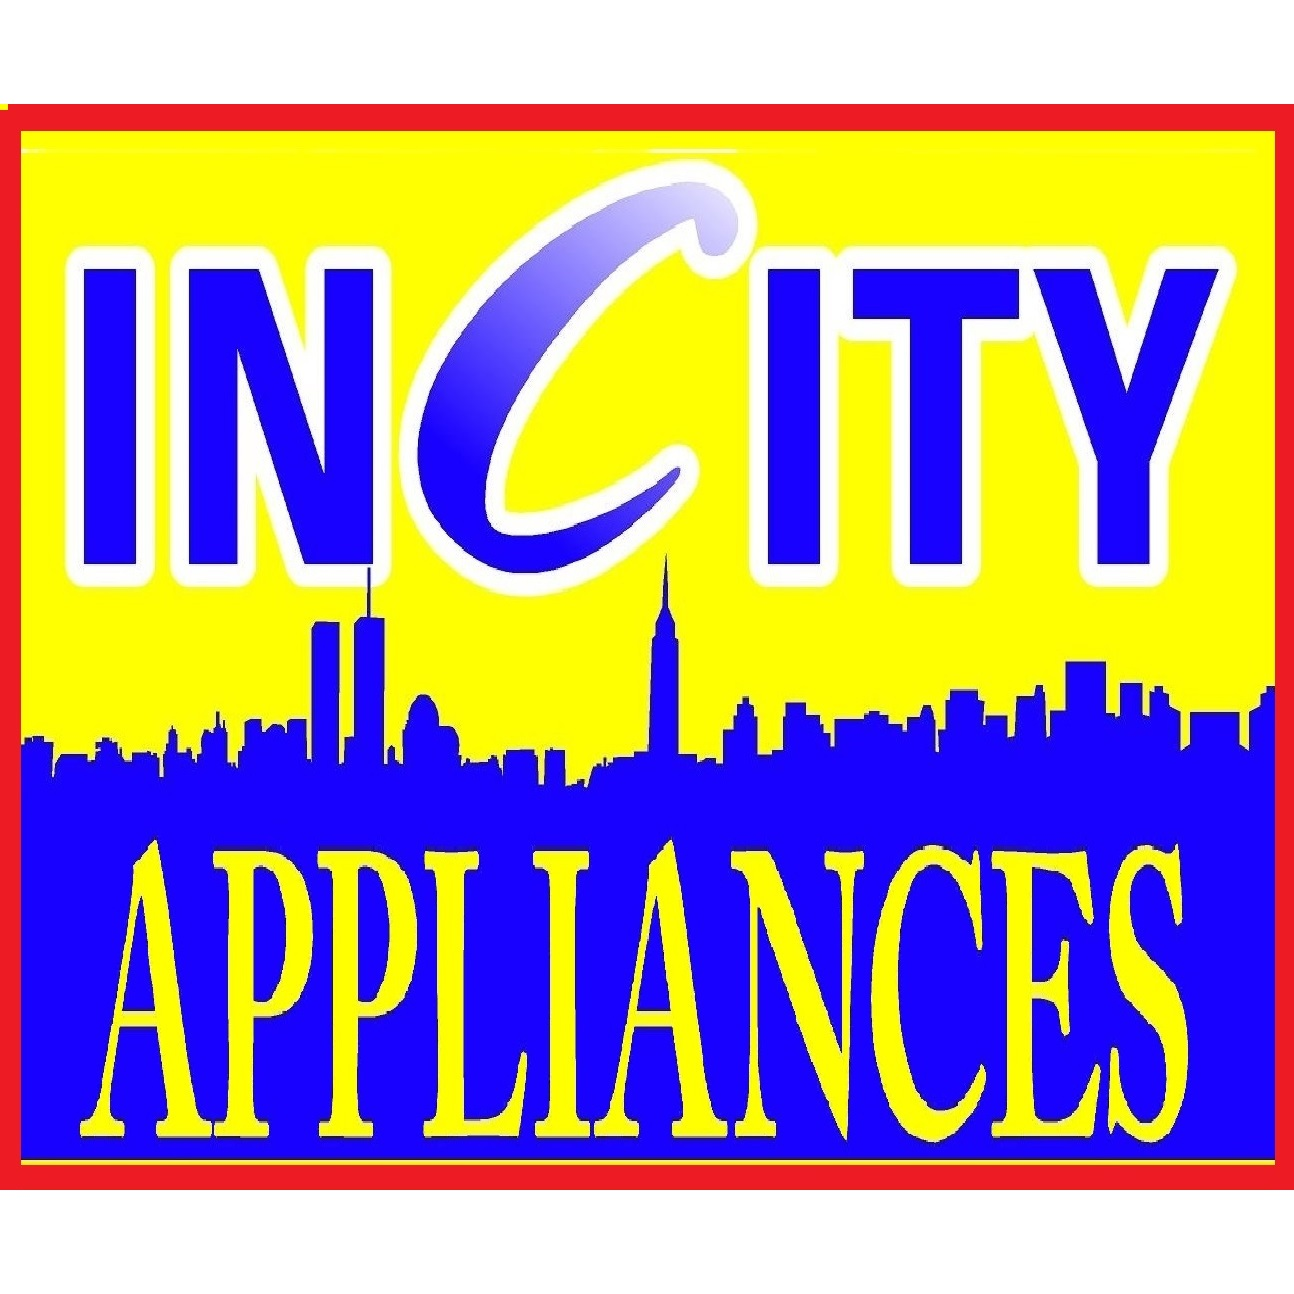 Incity Appliance Repairs, LLC